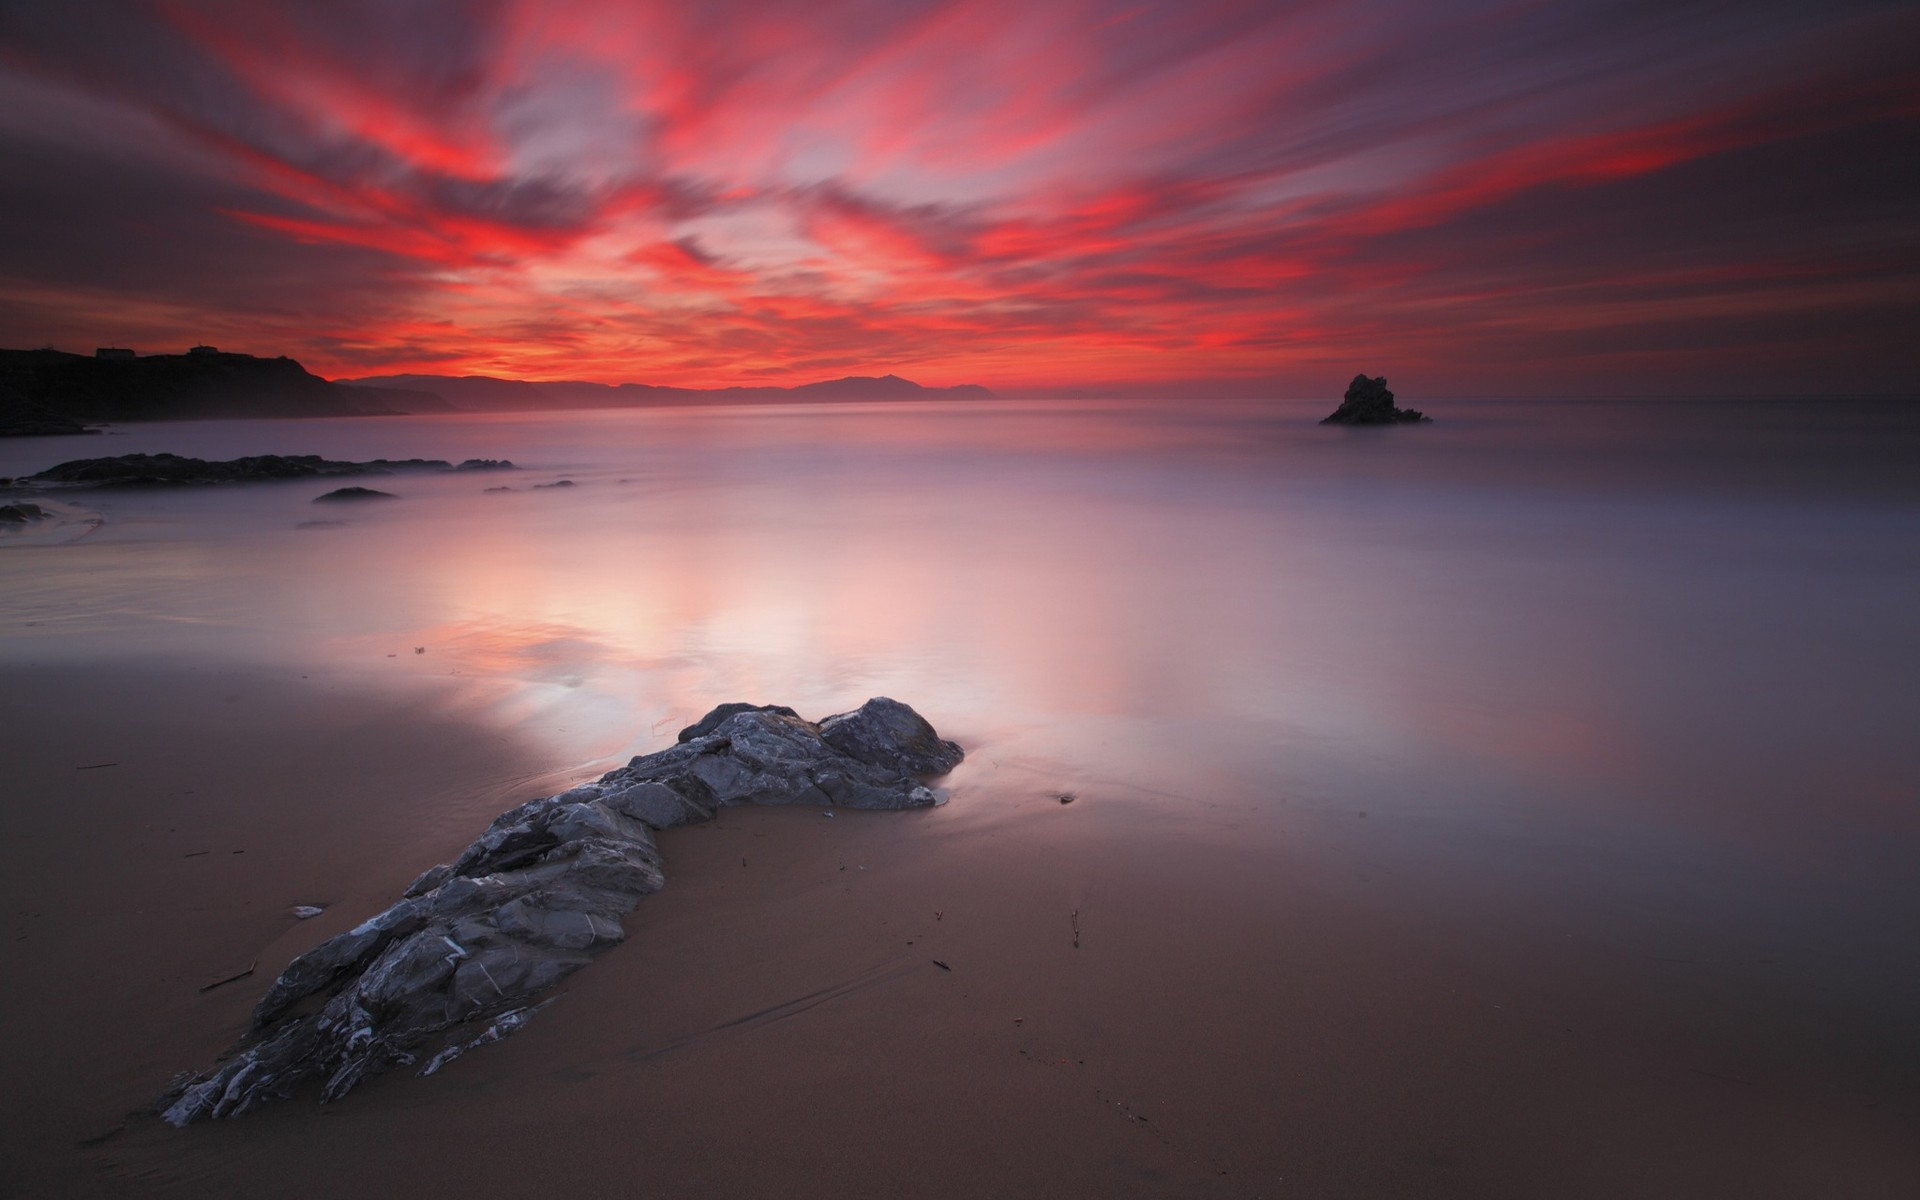 Red sunset over a calm sea